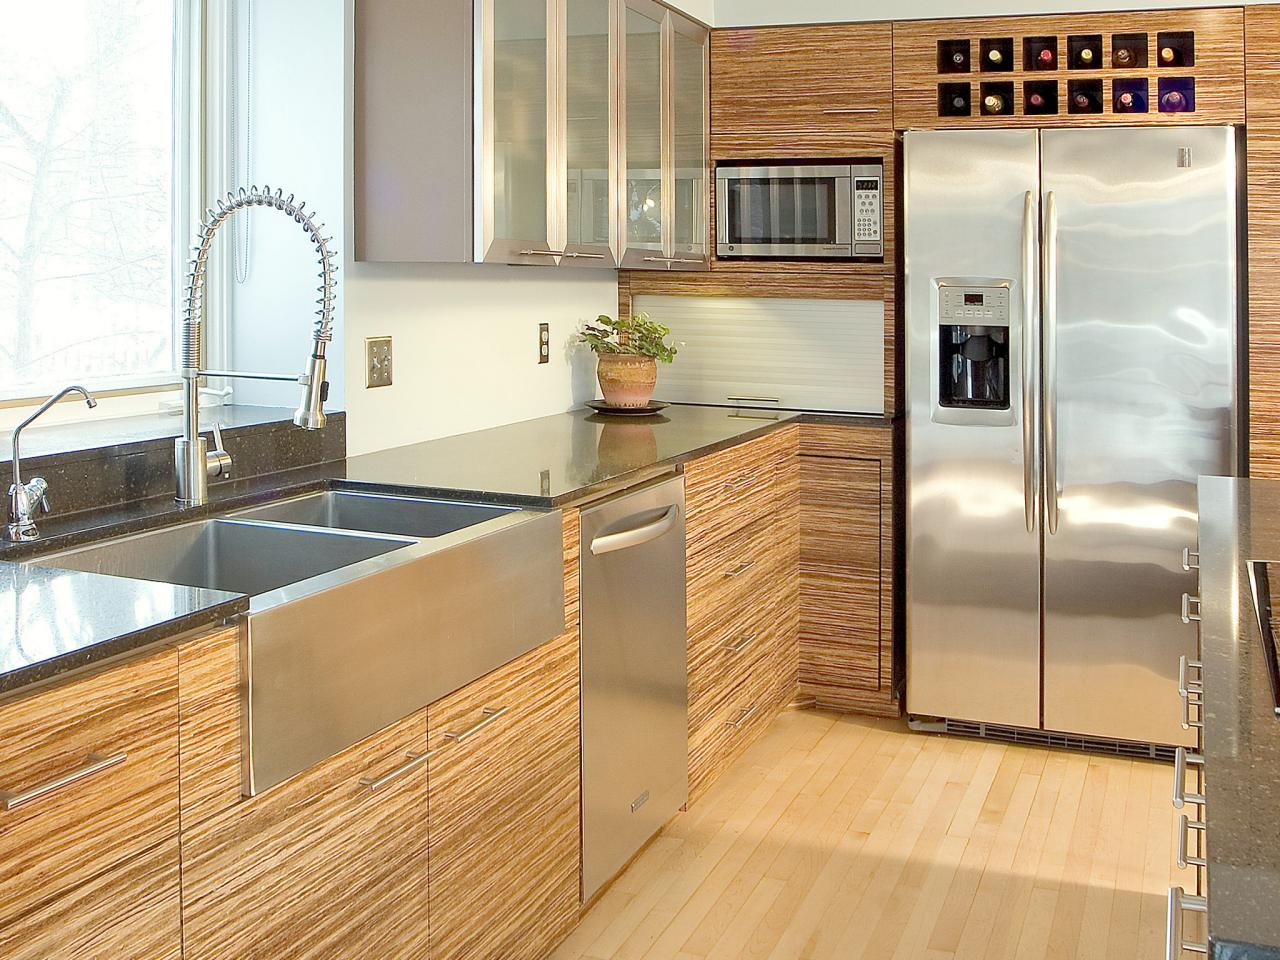 kitchen cabinet latest design modern kitchen cabinets pictures ideas amp tips from hgtv 19049